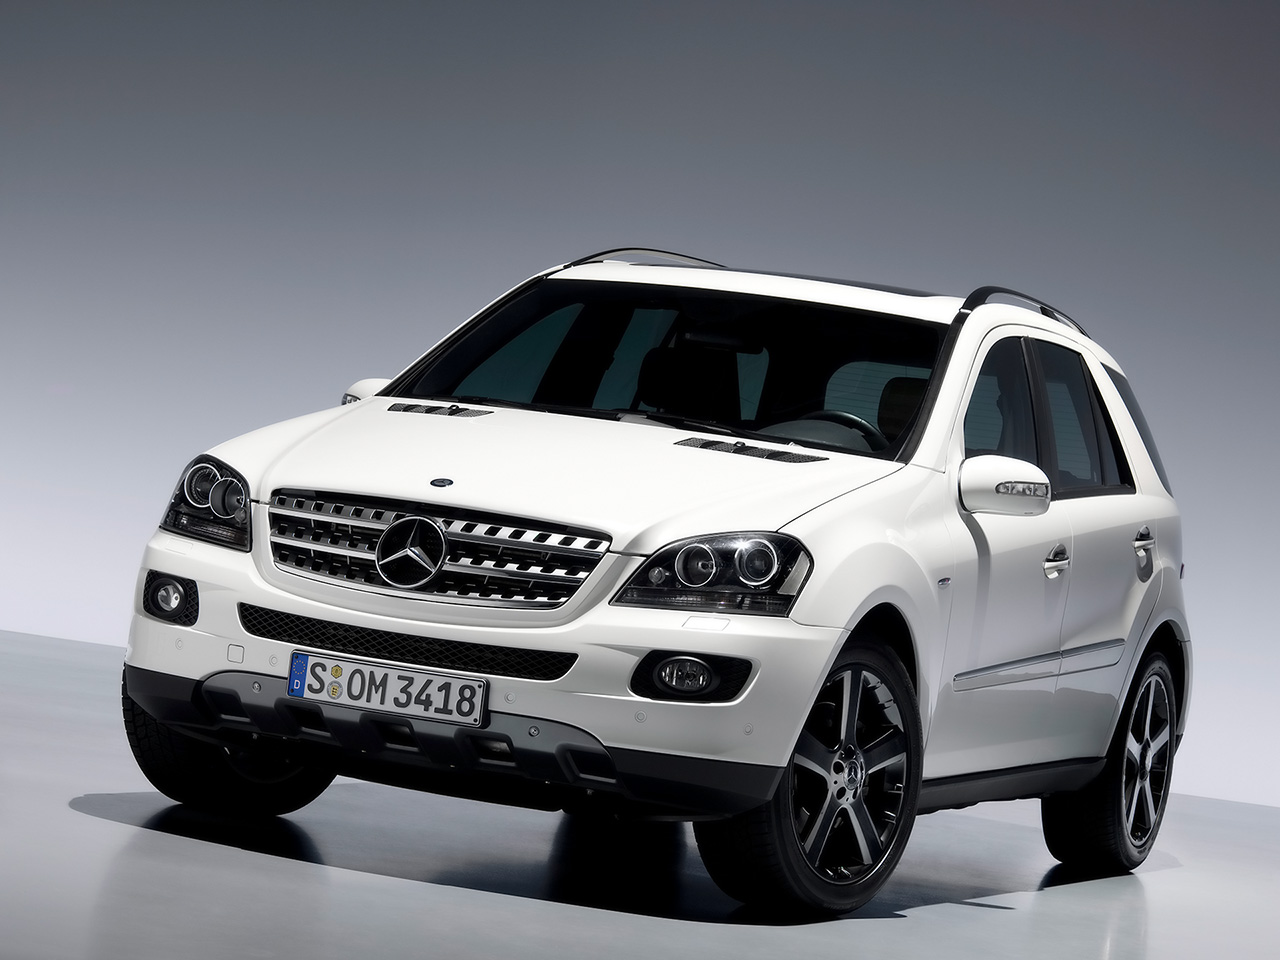 Coches de lujo taringa for Mercedes benz suv models list